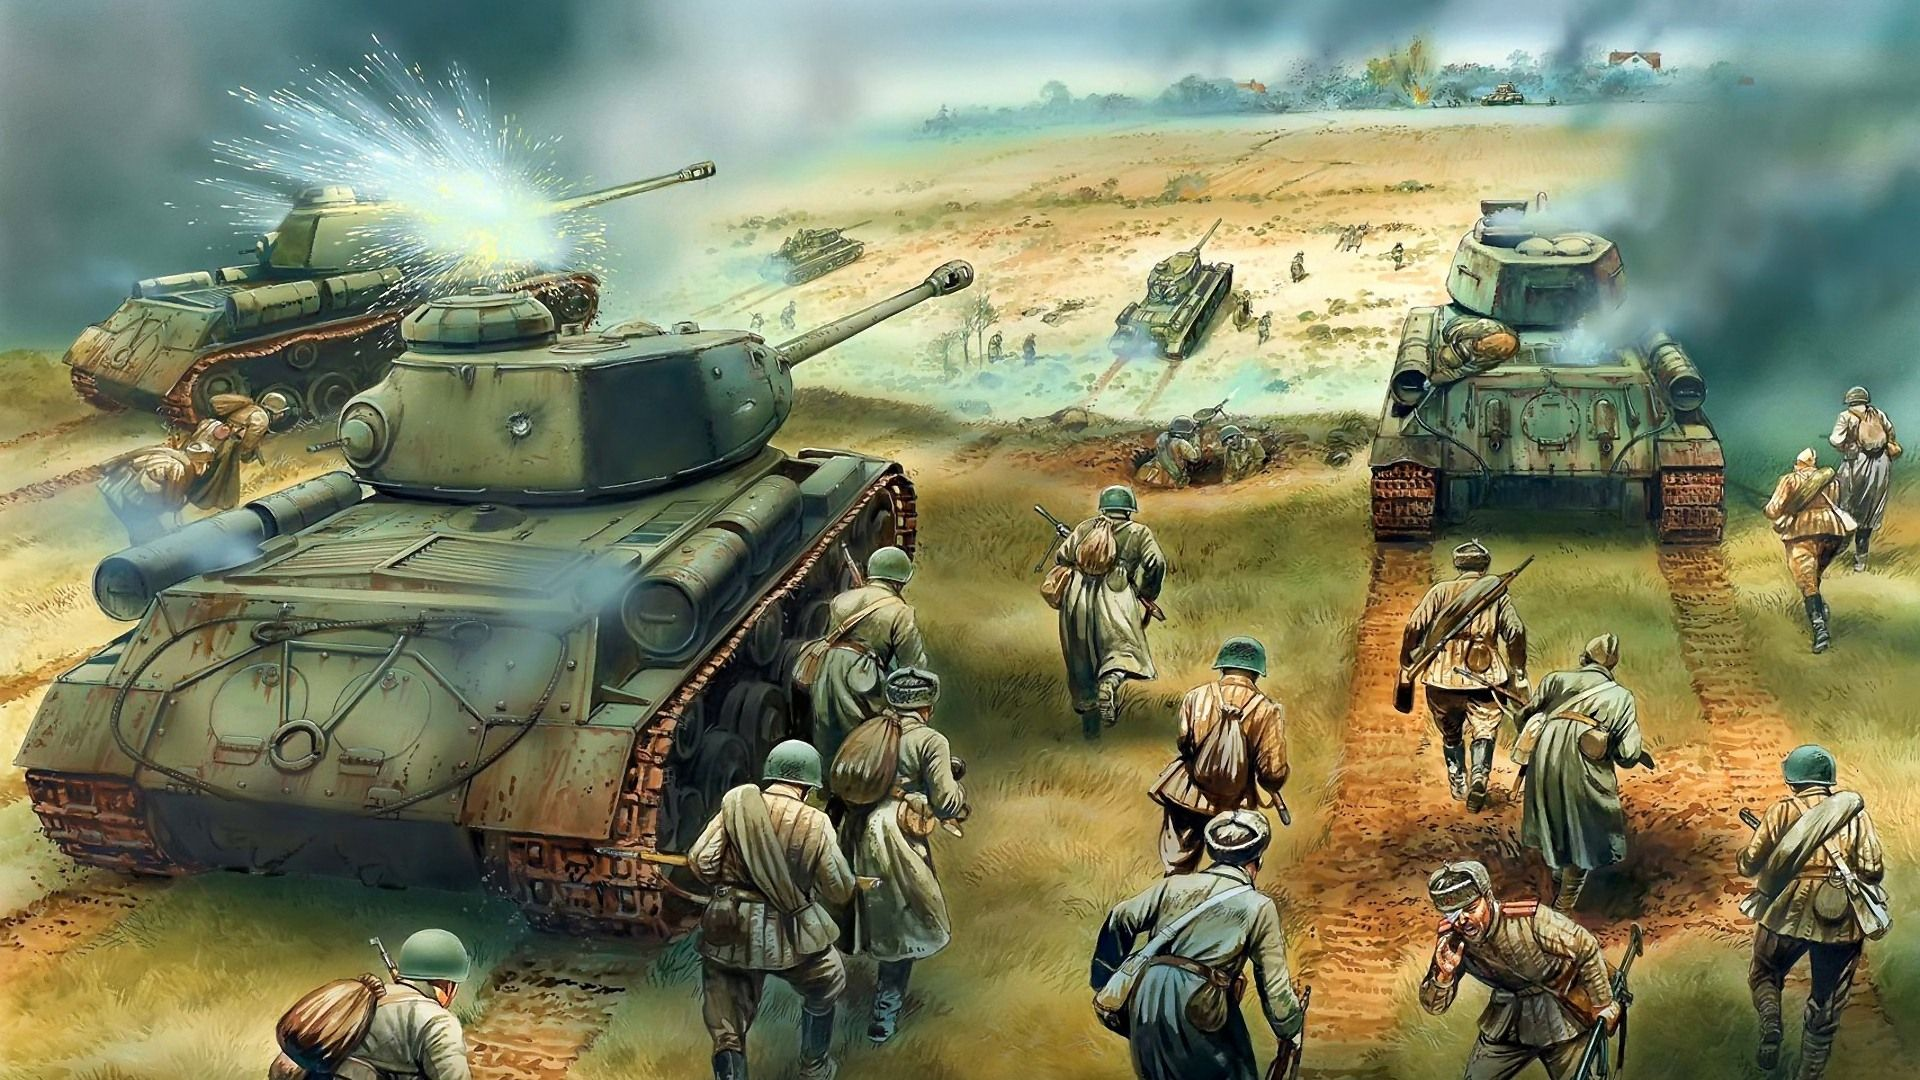 Military Tanks Armored Hd Painting Wallpapers 20 1920x1080 Army Wallpaper Military Wallpaper Tanks Military